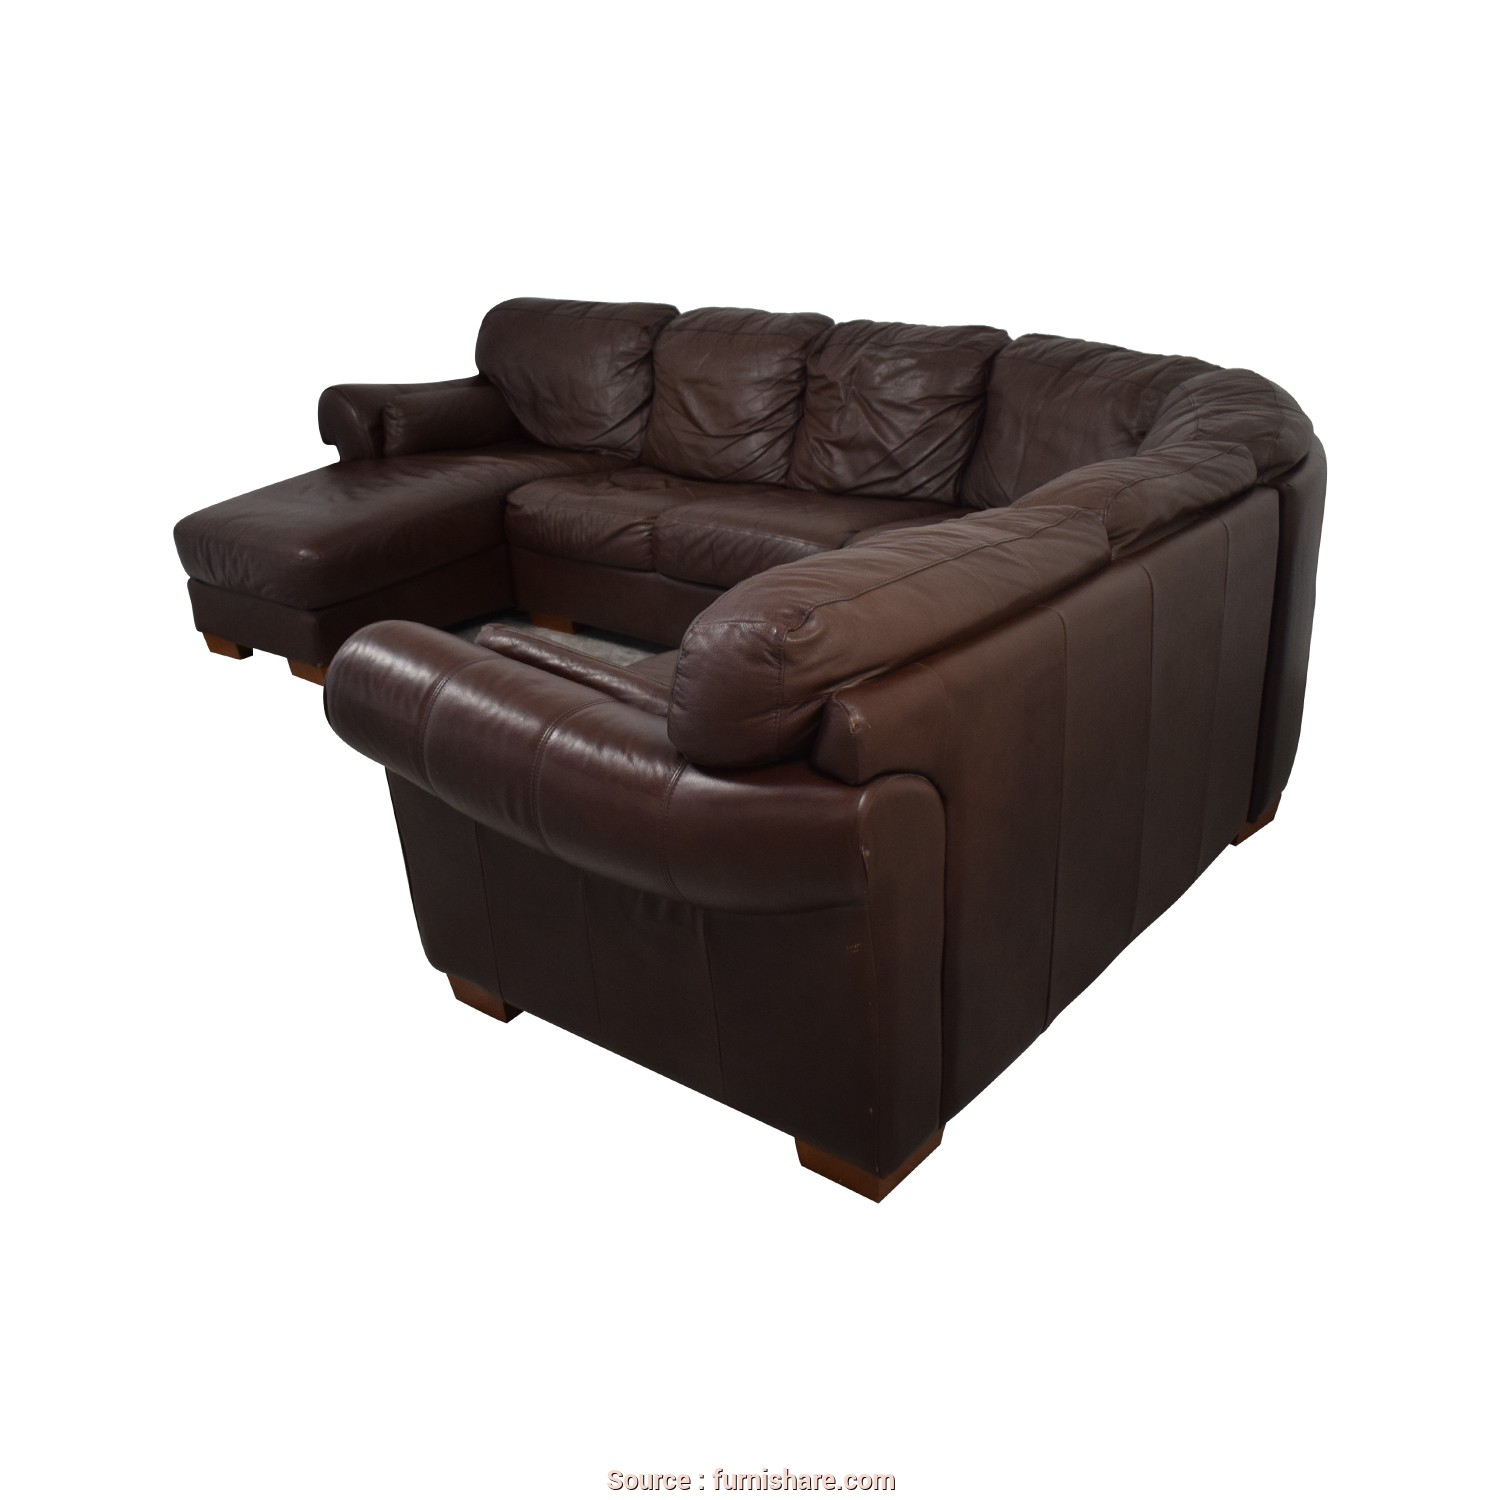 Divano Olga Chateau D'Ax, Amabile ... Chateau D'Ax Chateau D'Ax Divani Brown Leather L Sectional Couch With Chaise